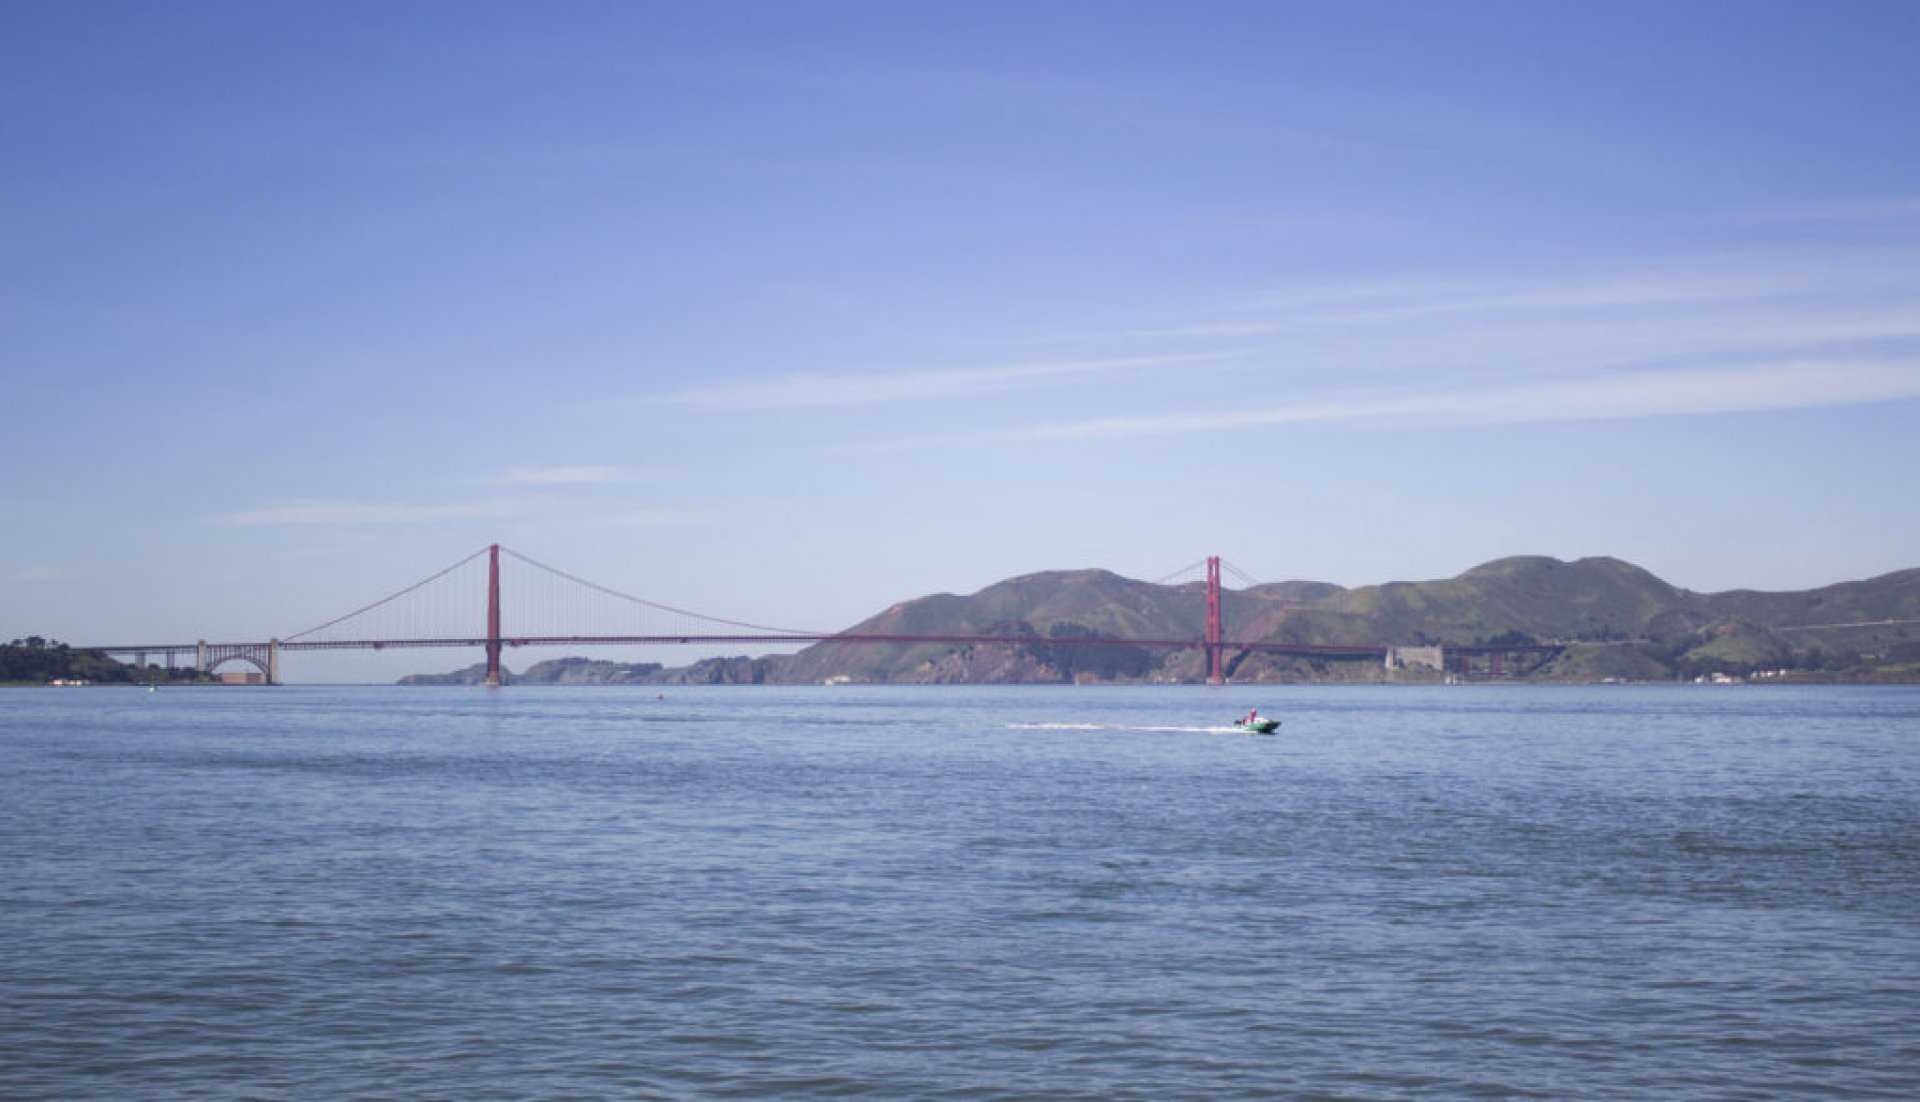 The Golden Gate Bridge and the San Francisco Bay in San Francisco, California. The Golden Gate Bridge is one of the most well-known and popular sites to see in the United States. | Photo by Liam Olson